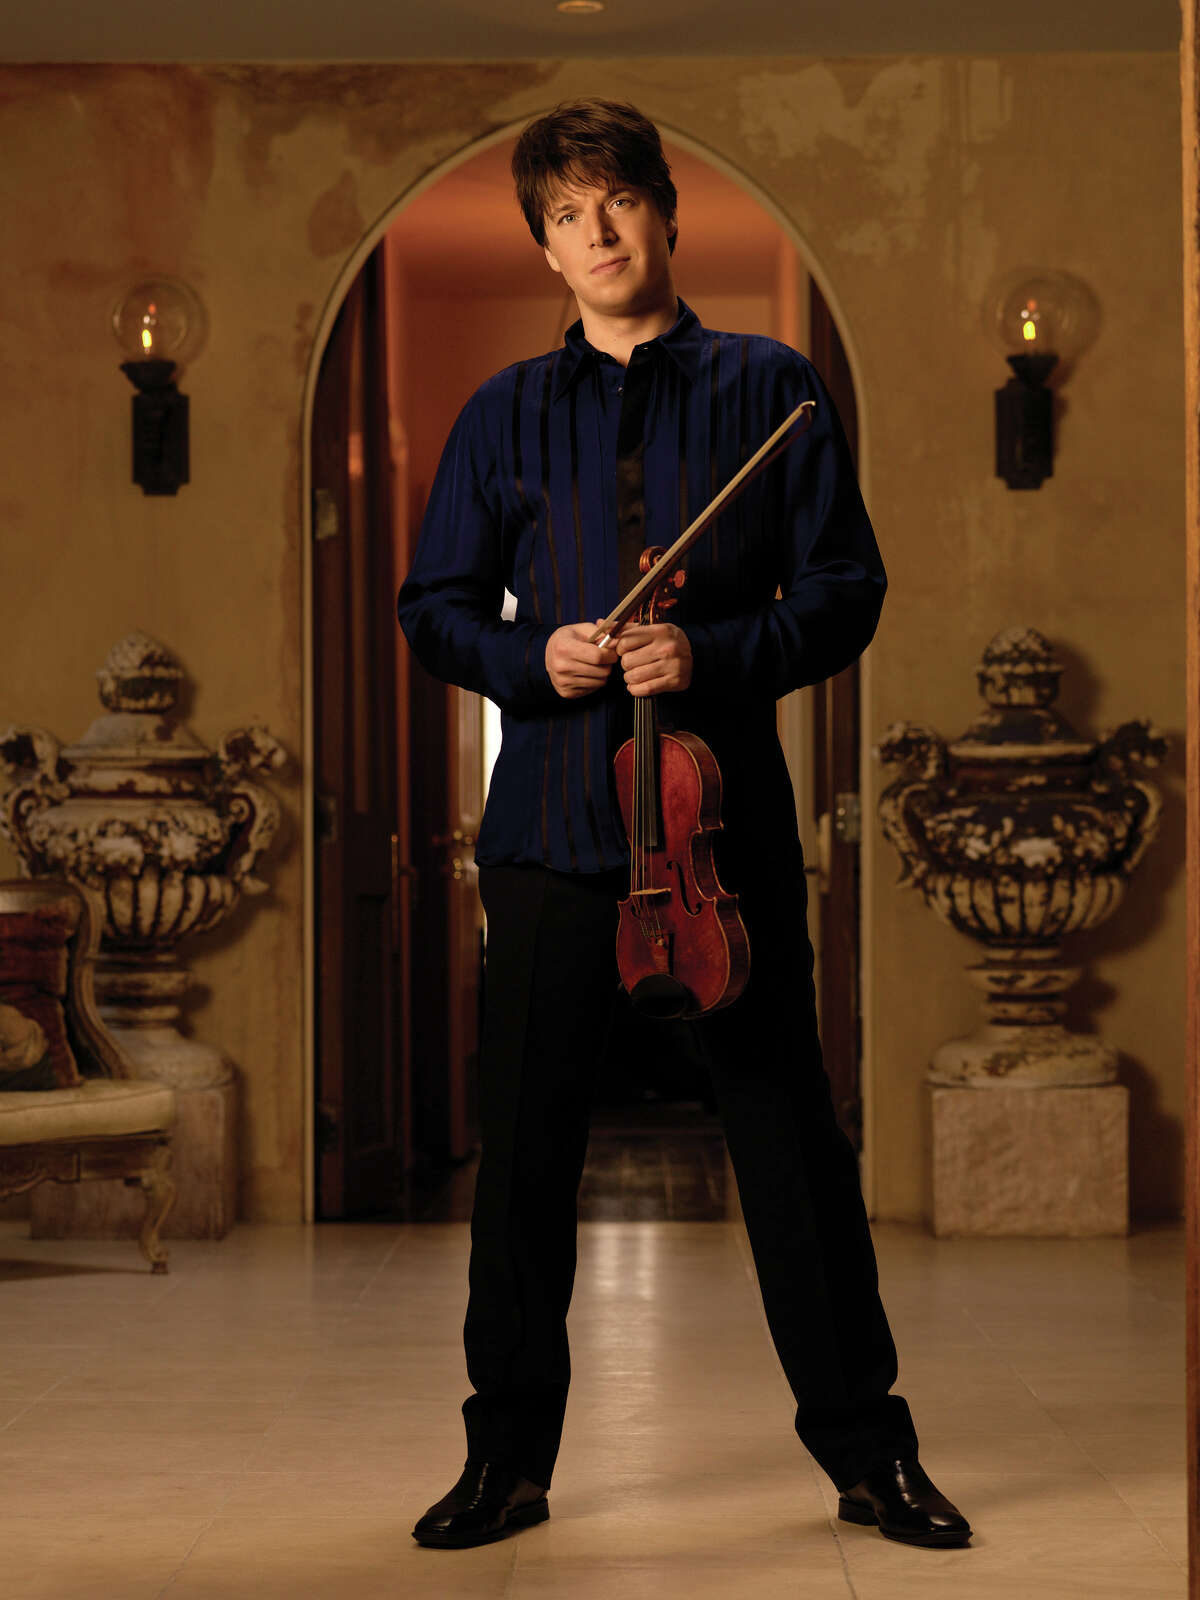 Violinist Joshua Bell will perform with the Houston Symphony during its 2018-19 season.